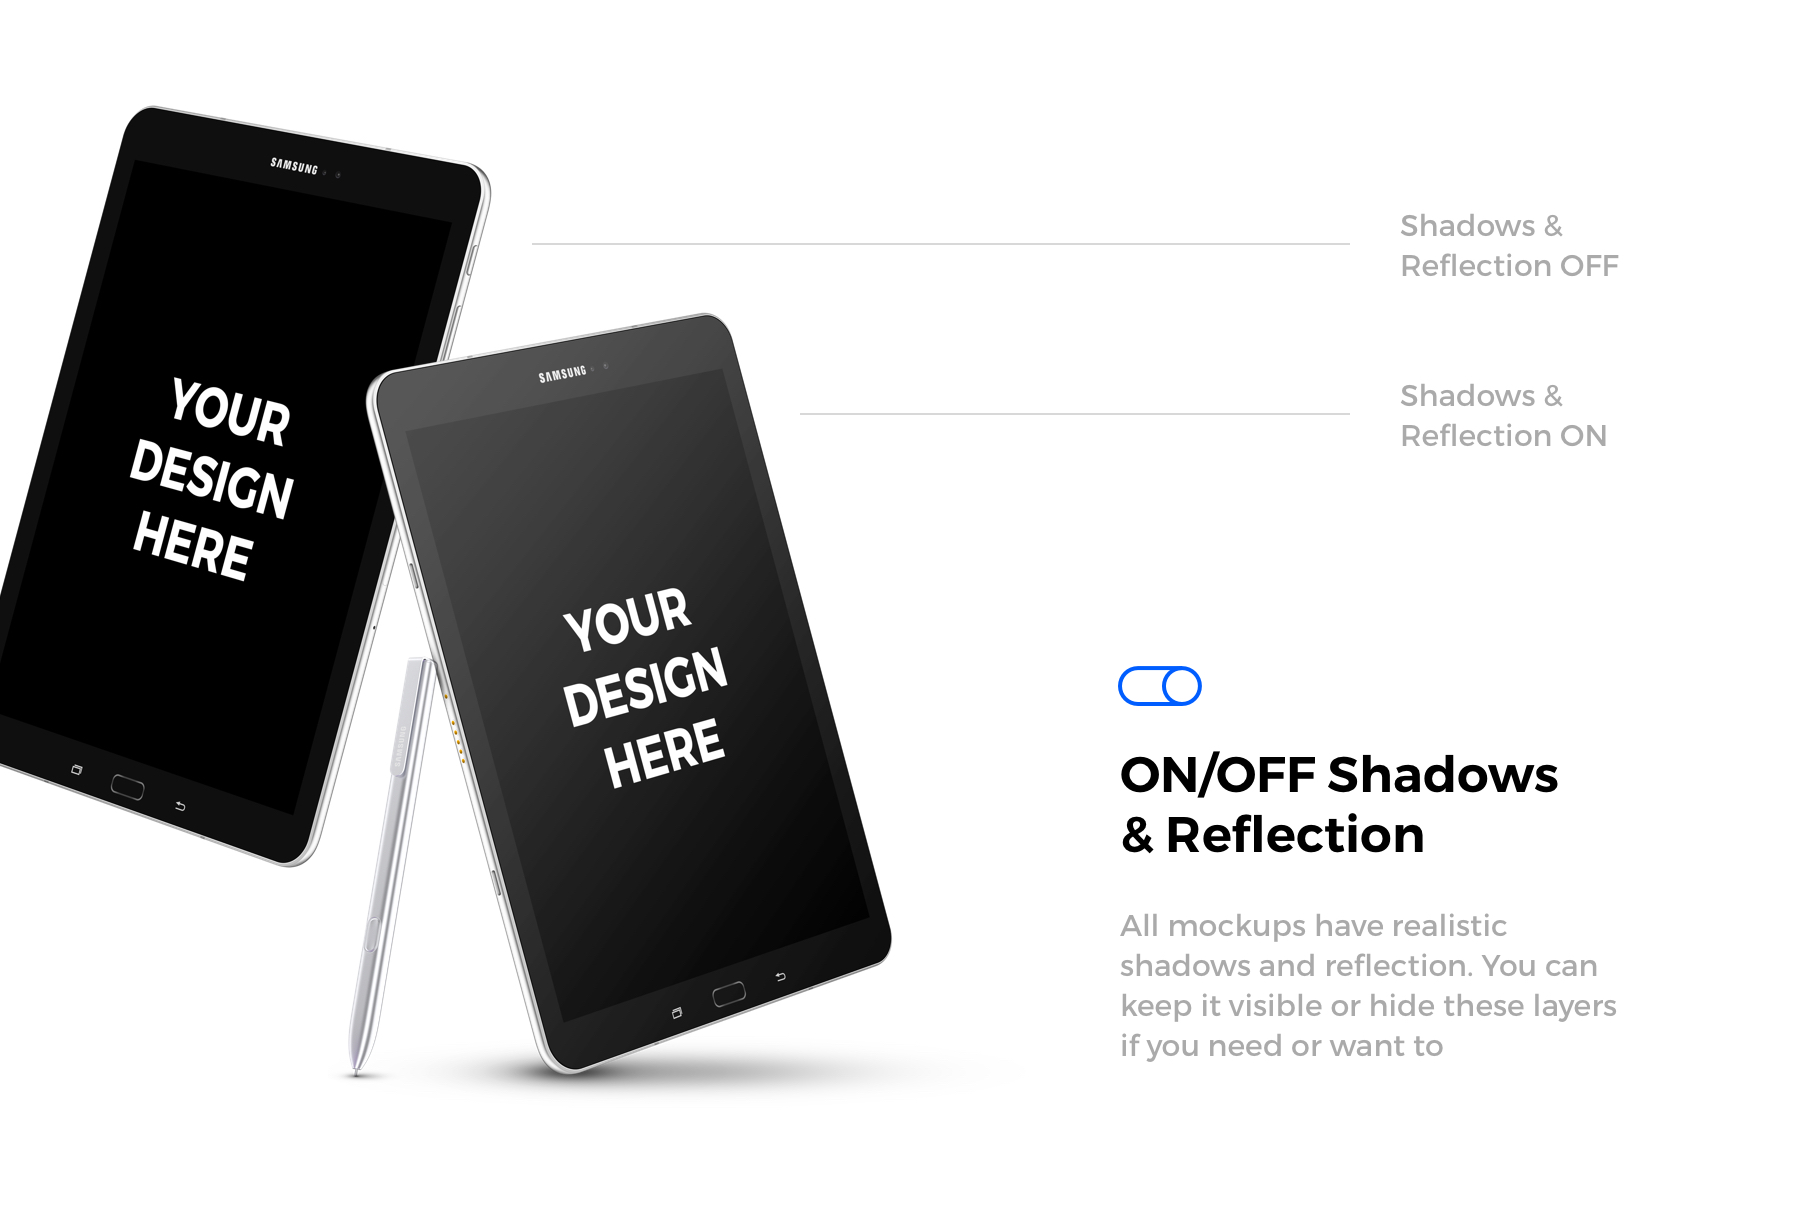 91x Android & Windows Mockups example image 6